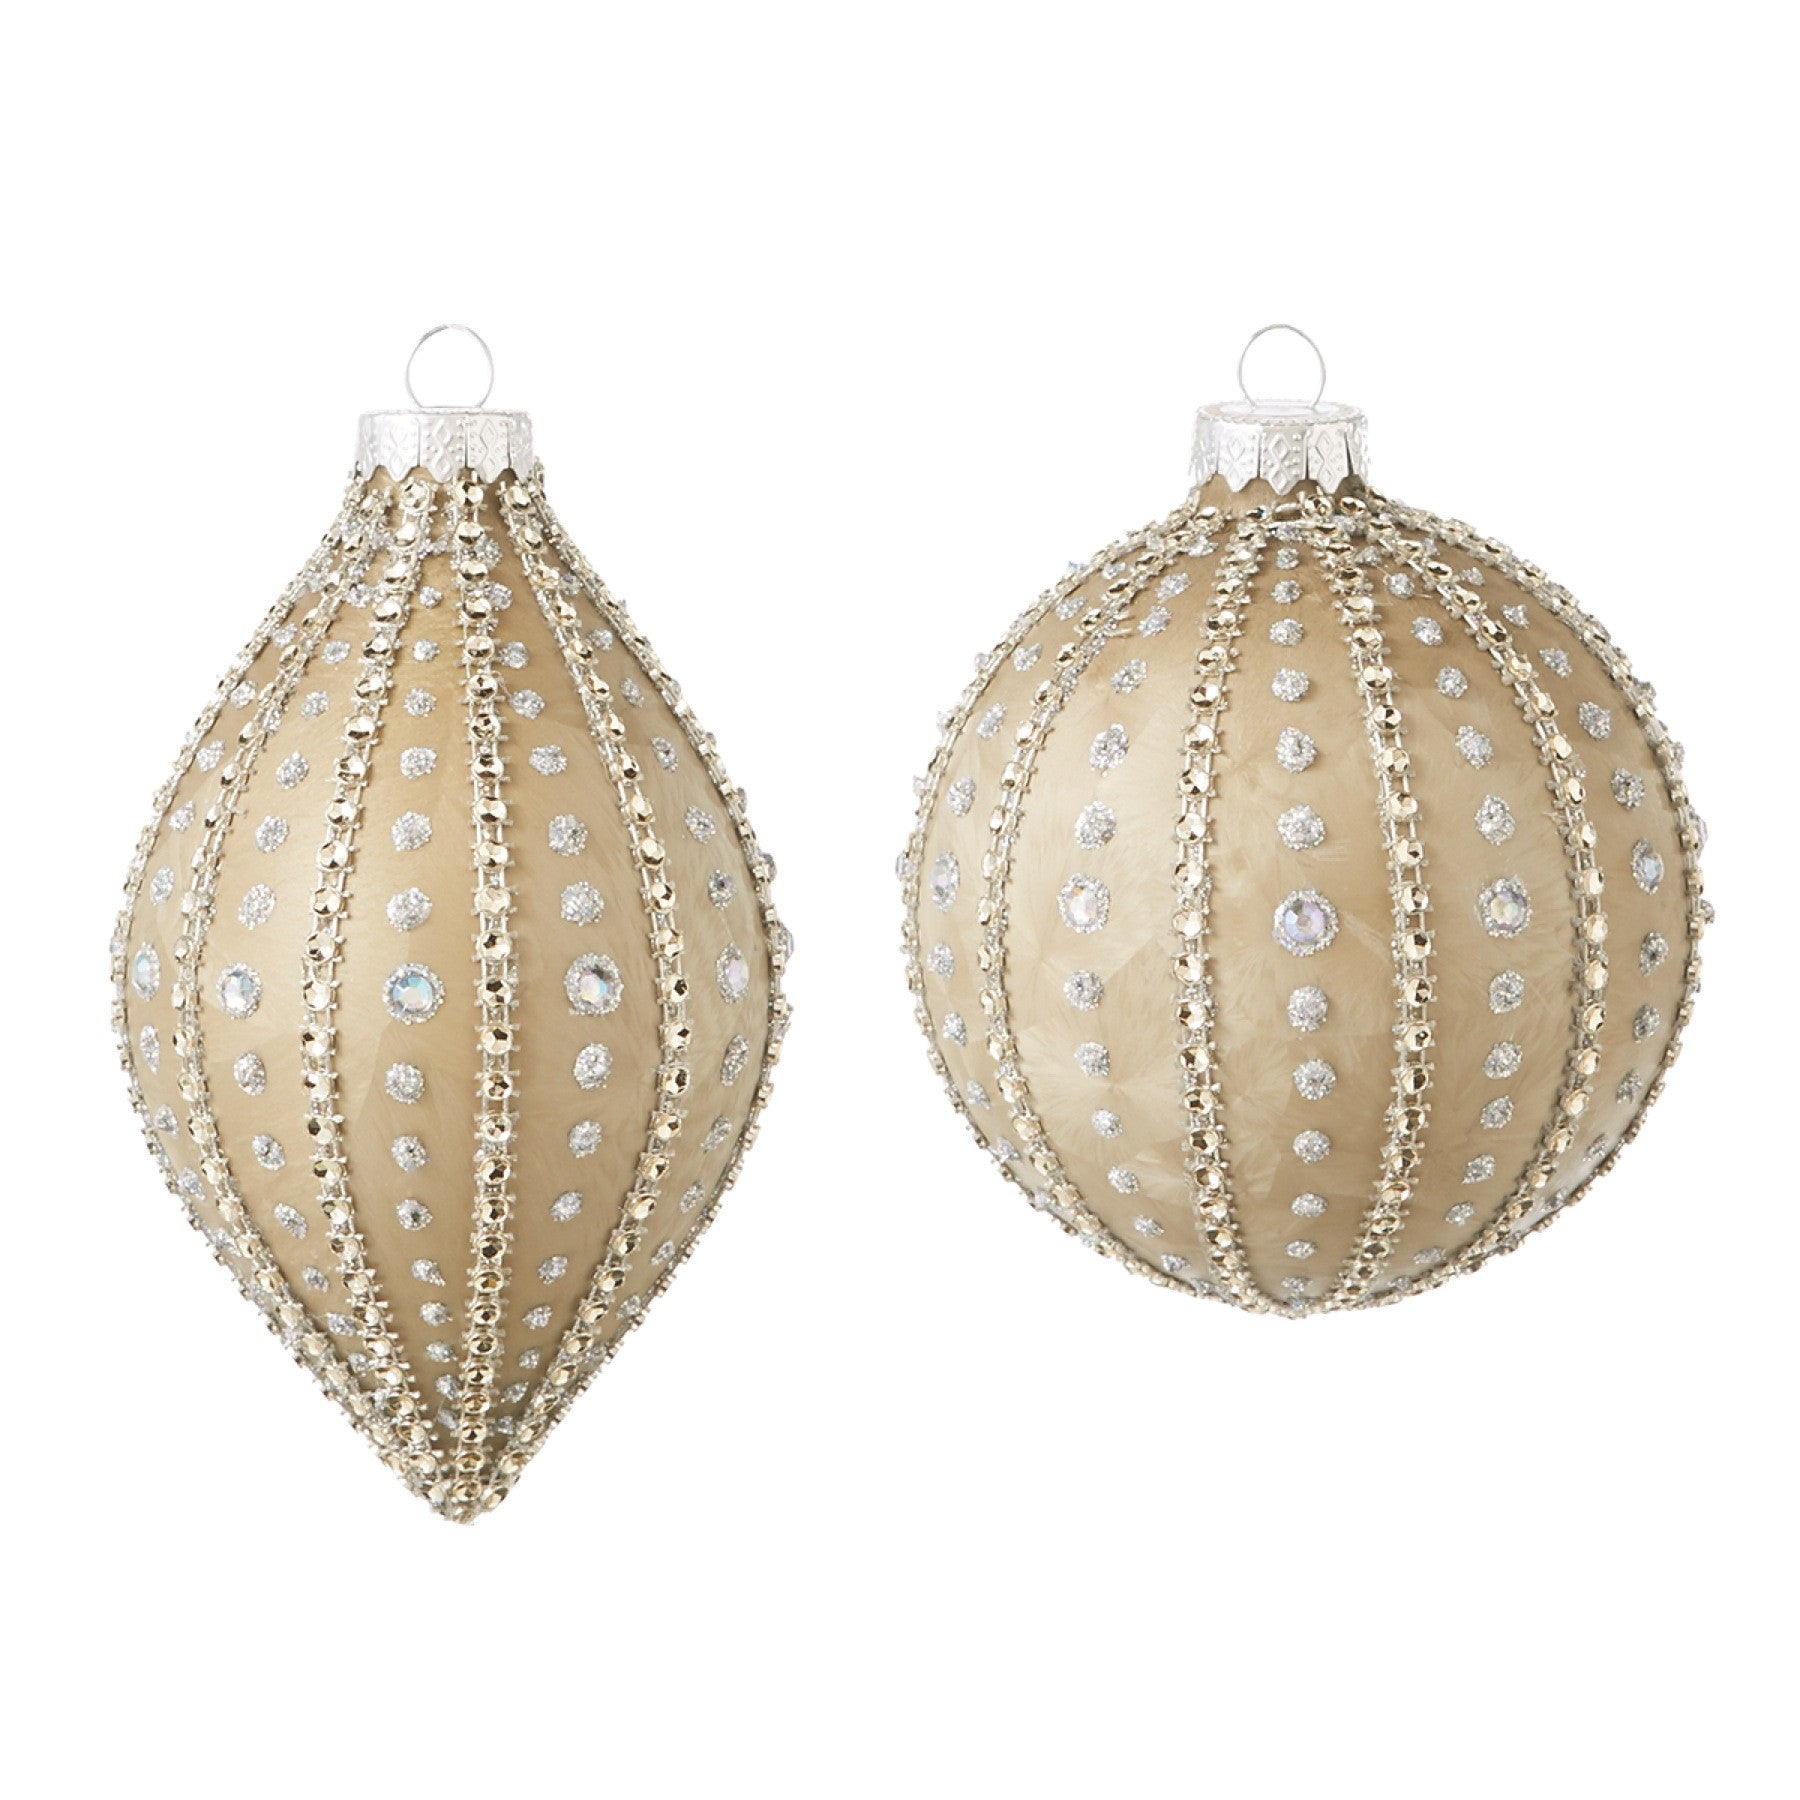 Gold Gem Ball and Drop Ornament, MW-Midwest / CBK, Putti Fine Furnishings